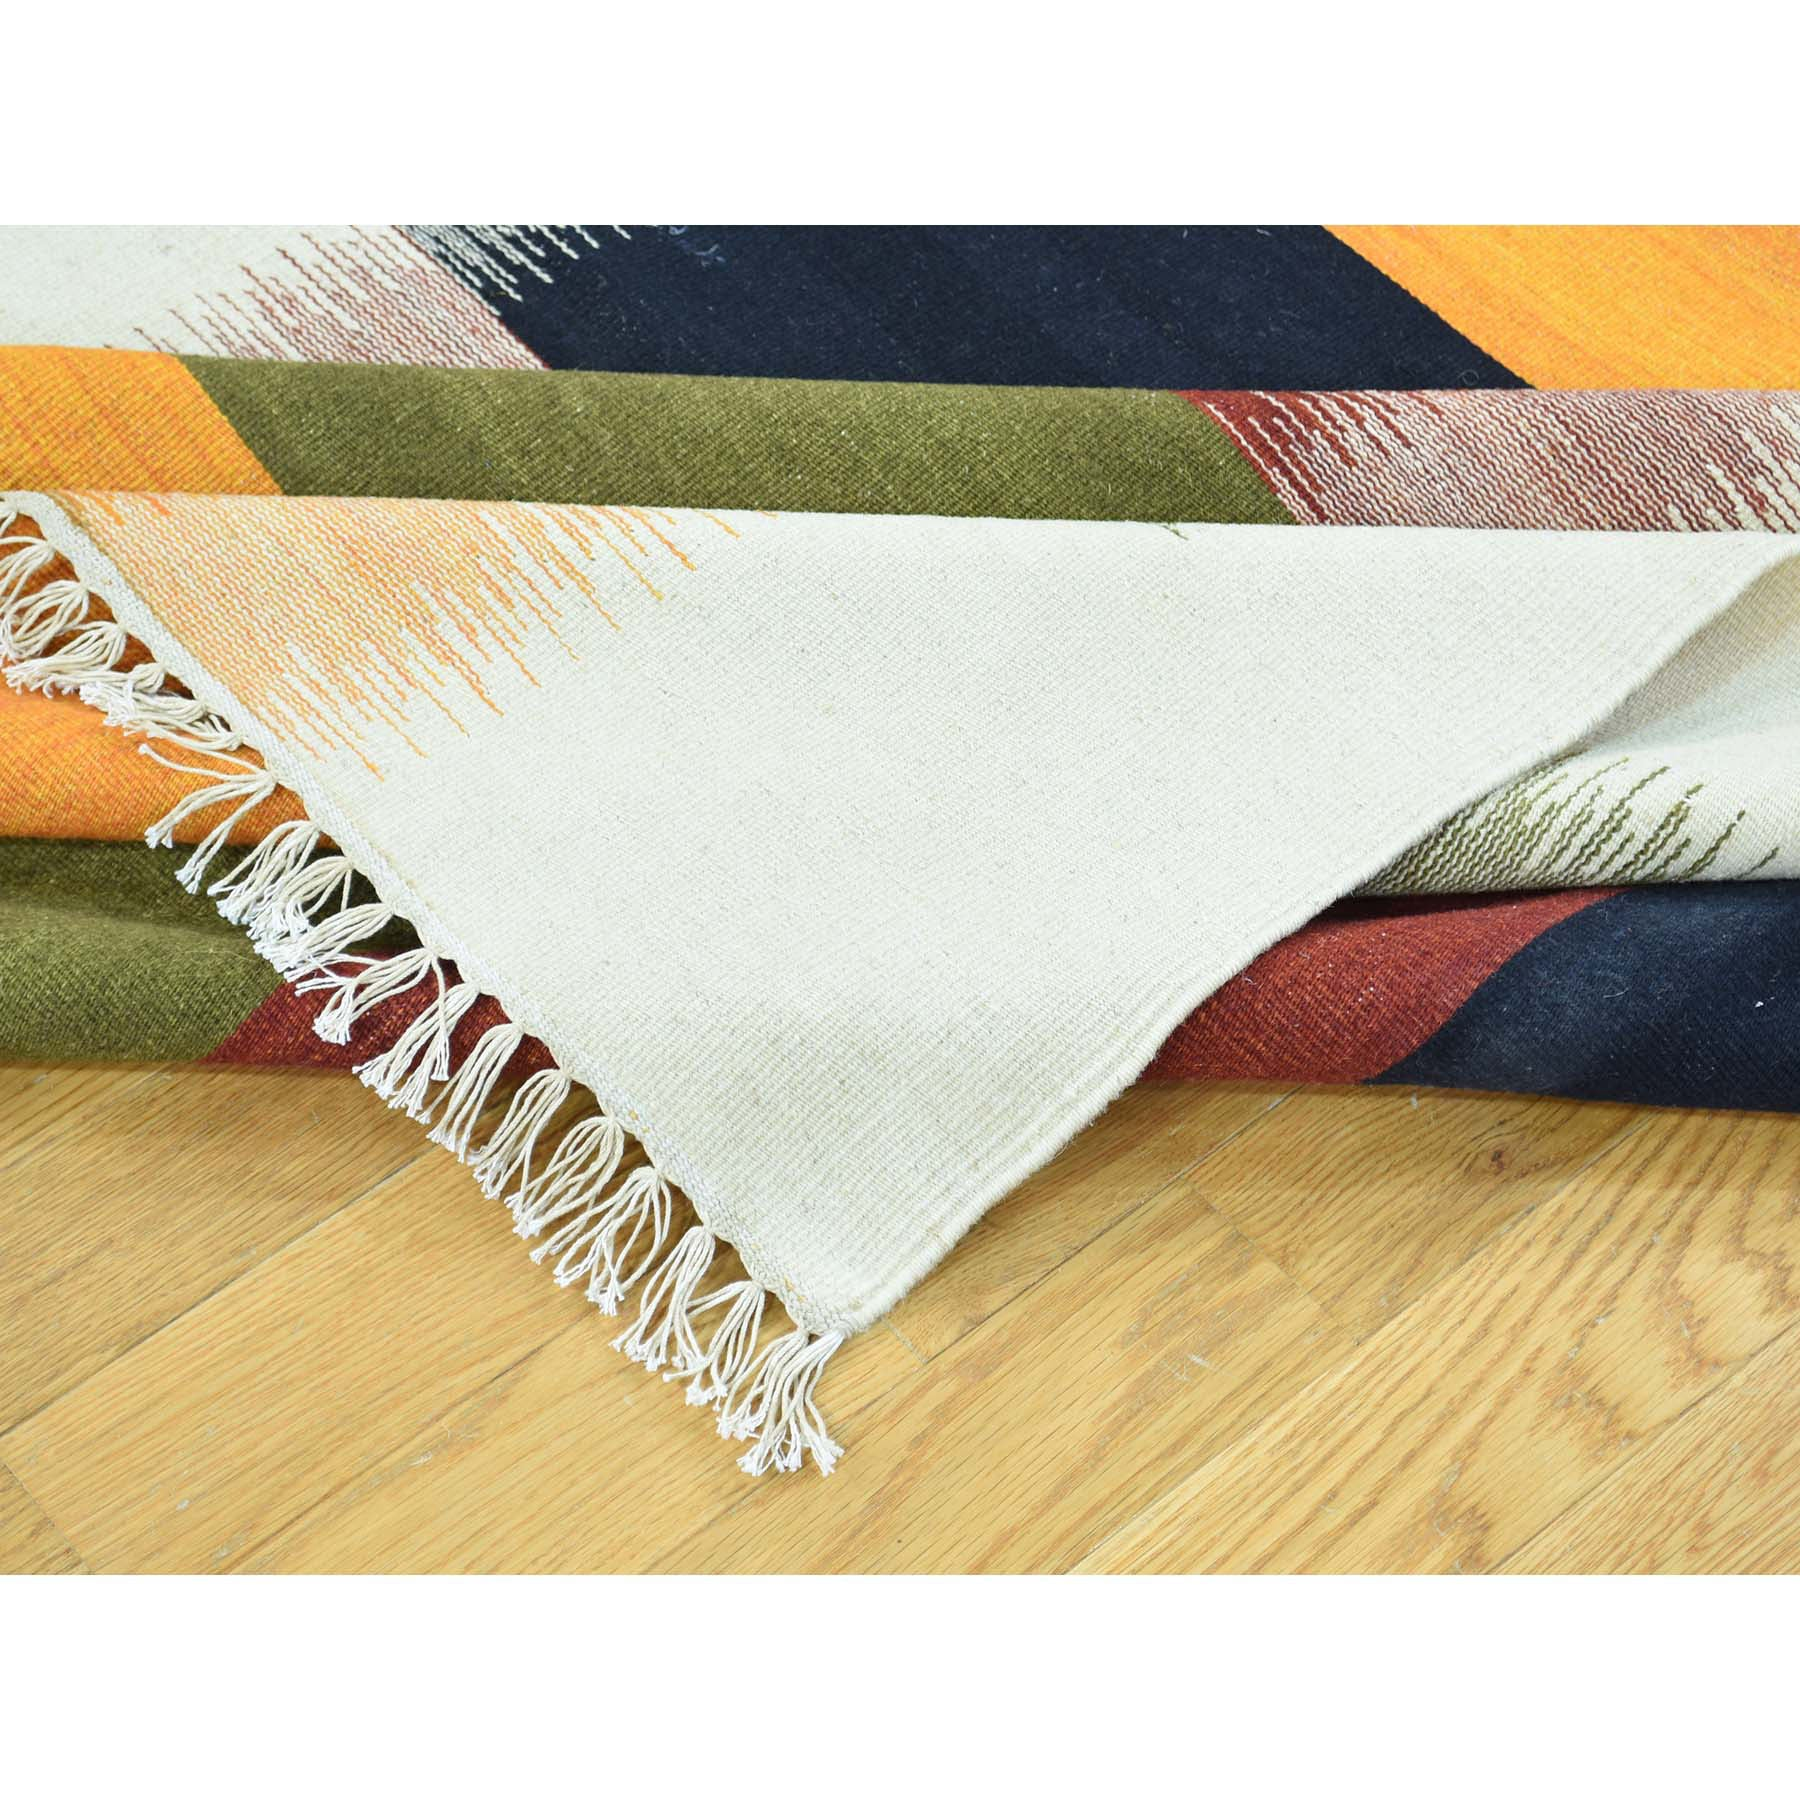 "Handmade Flat Weave Rectangle Rug > Design# SH31939 > Size: 5'-1"" x 8'-4"" [ONLINE ONLY]"